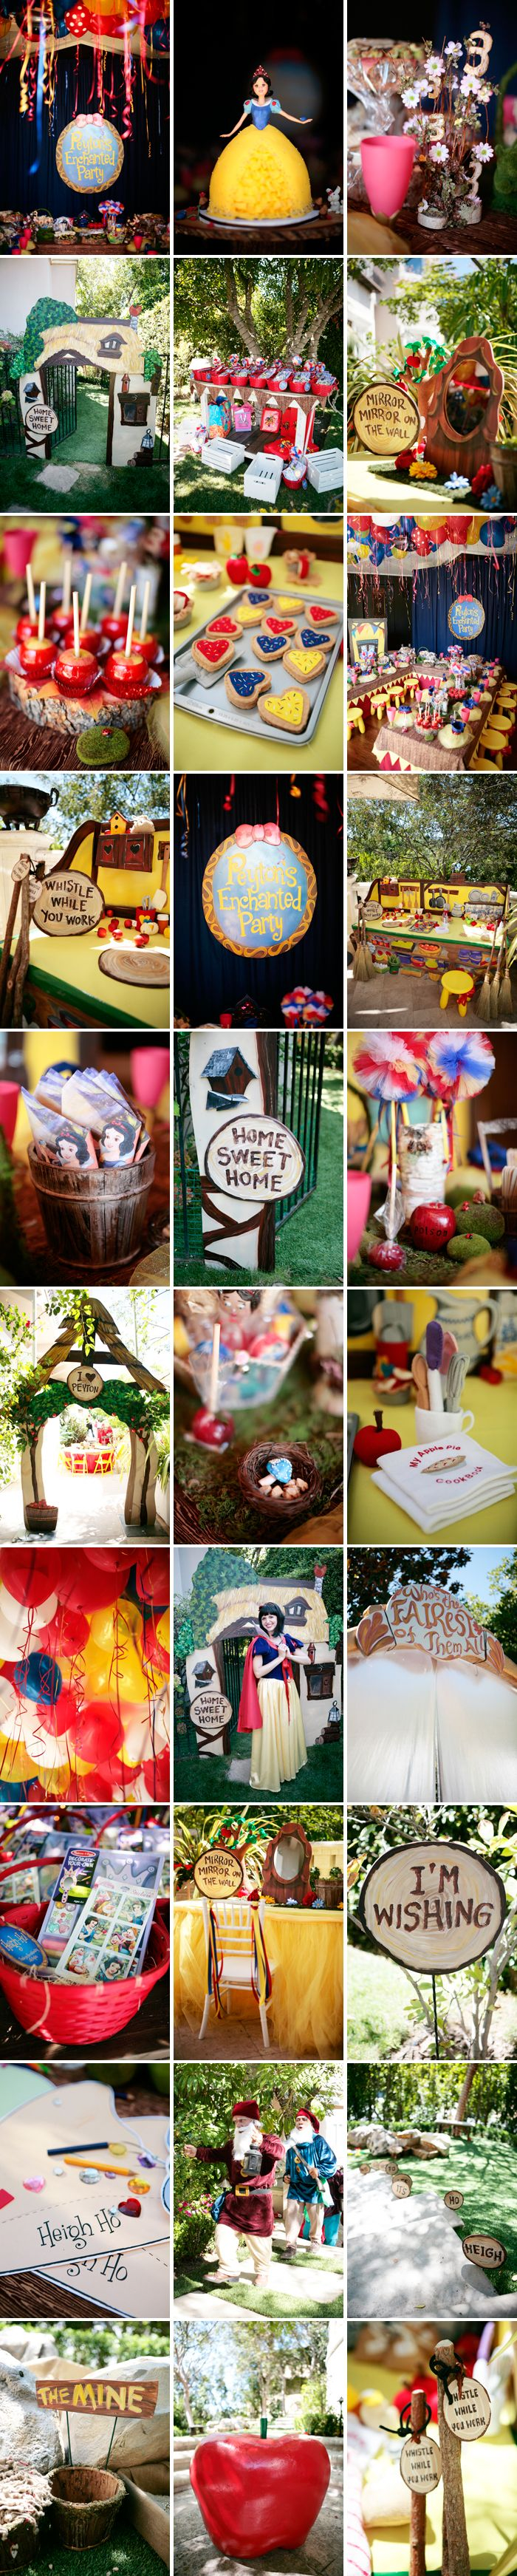 "An ""enchanting"" fairy tale party - I absolutely love this! Would only take certain aspects, LOVE the cottage facade entrance to the party... definitely on the to do list! Cool Idea to incorporate parts of every popular fairy tale that Grace loves. #YoYoBirthday"